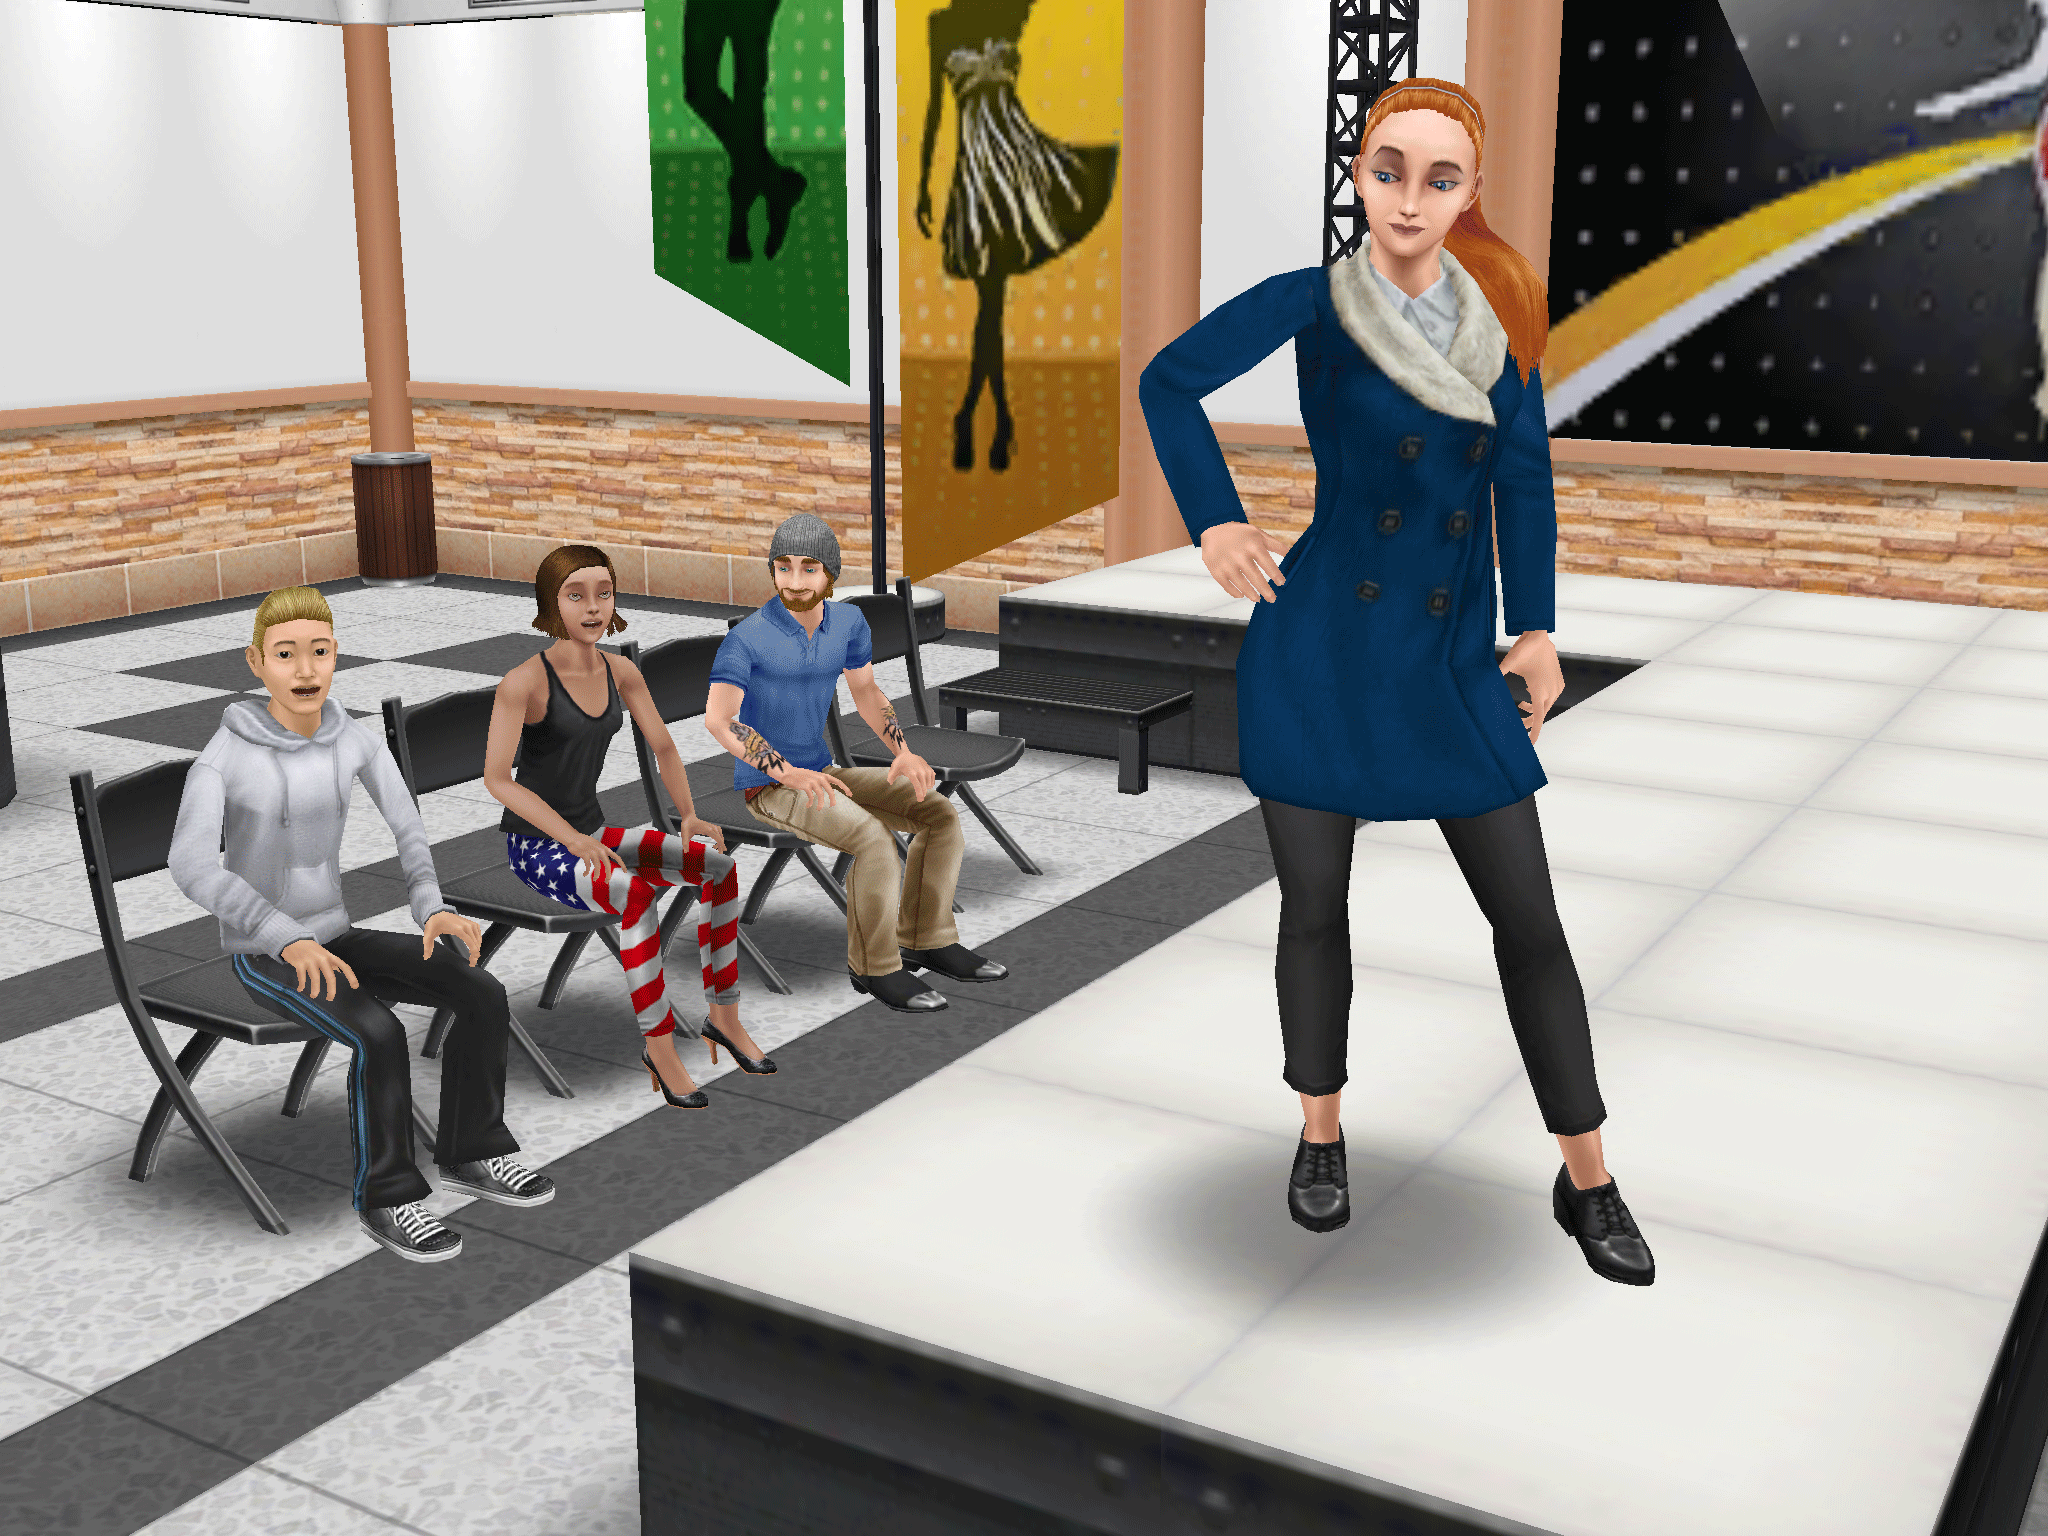 The sims freeplay long hairstyle - The Sims Freeplay On Twitter Long Hair Is Back Get Them Strutting Their Stuff On The Catwalk Then Off To The Salon For A Luscious New Do